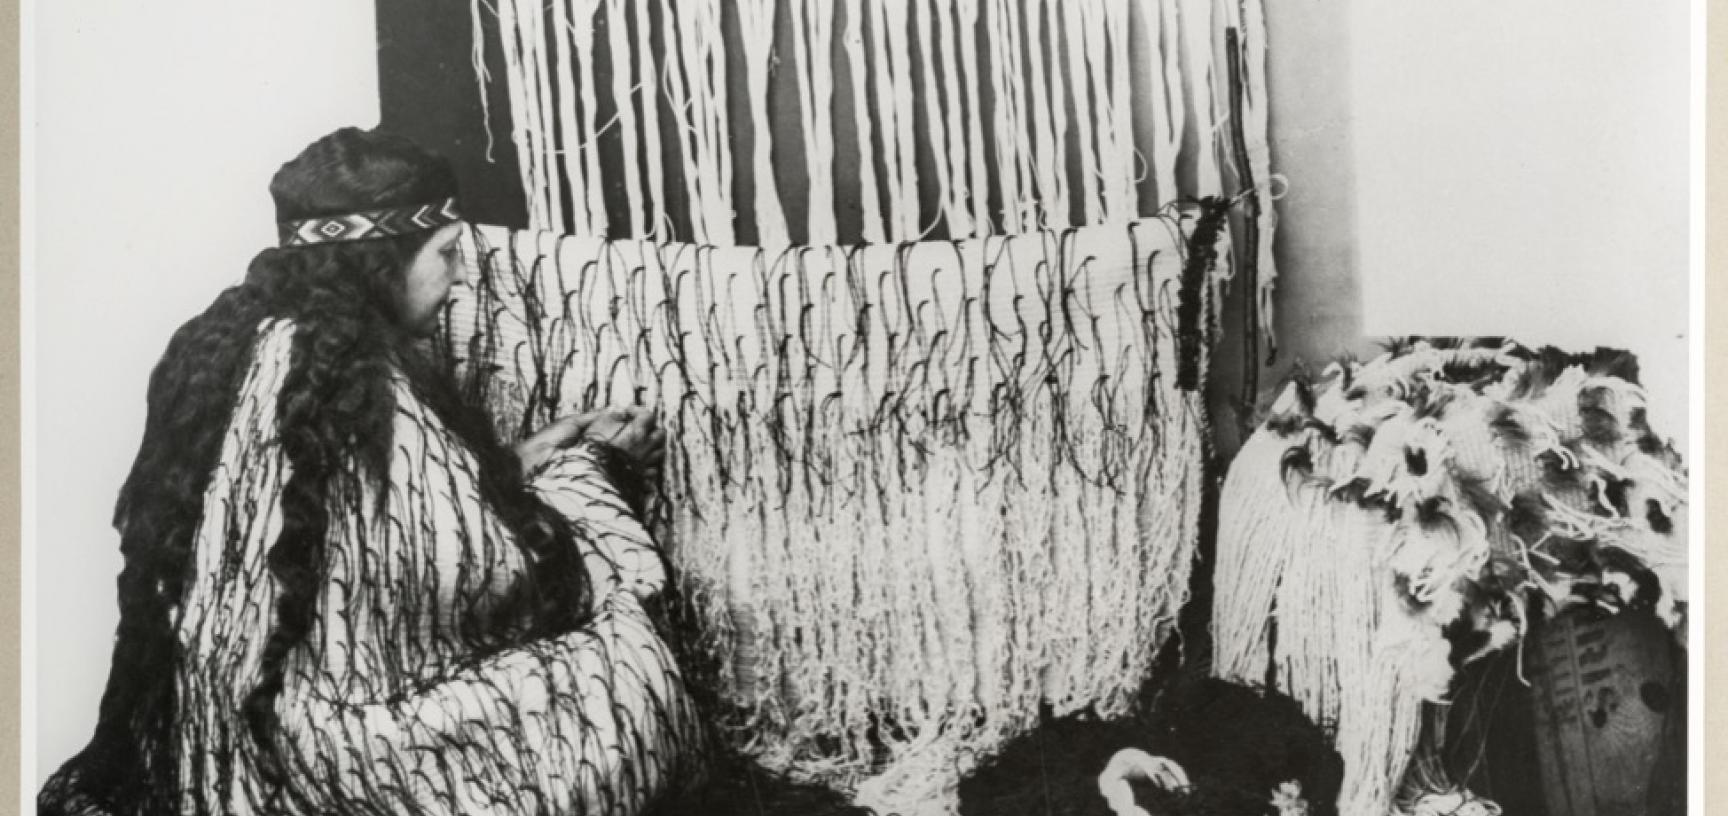 Studio portrait of Makereti, circa 1926. Oddington or Oxford, Oxfordshire, England. Makereti is weaving a dress cloak (korowai) of flax fibre (muka) with black streamers made from the New Zealand kiekie plant and a dyed flax fibre headband (tipare) with a